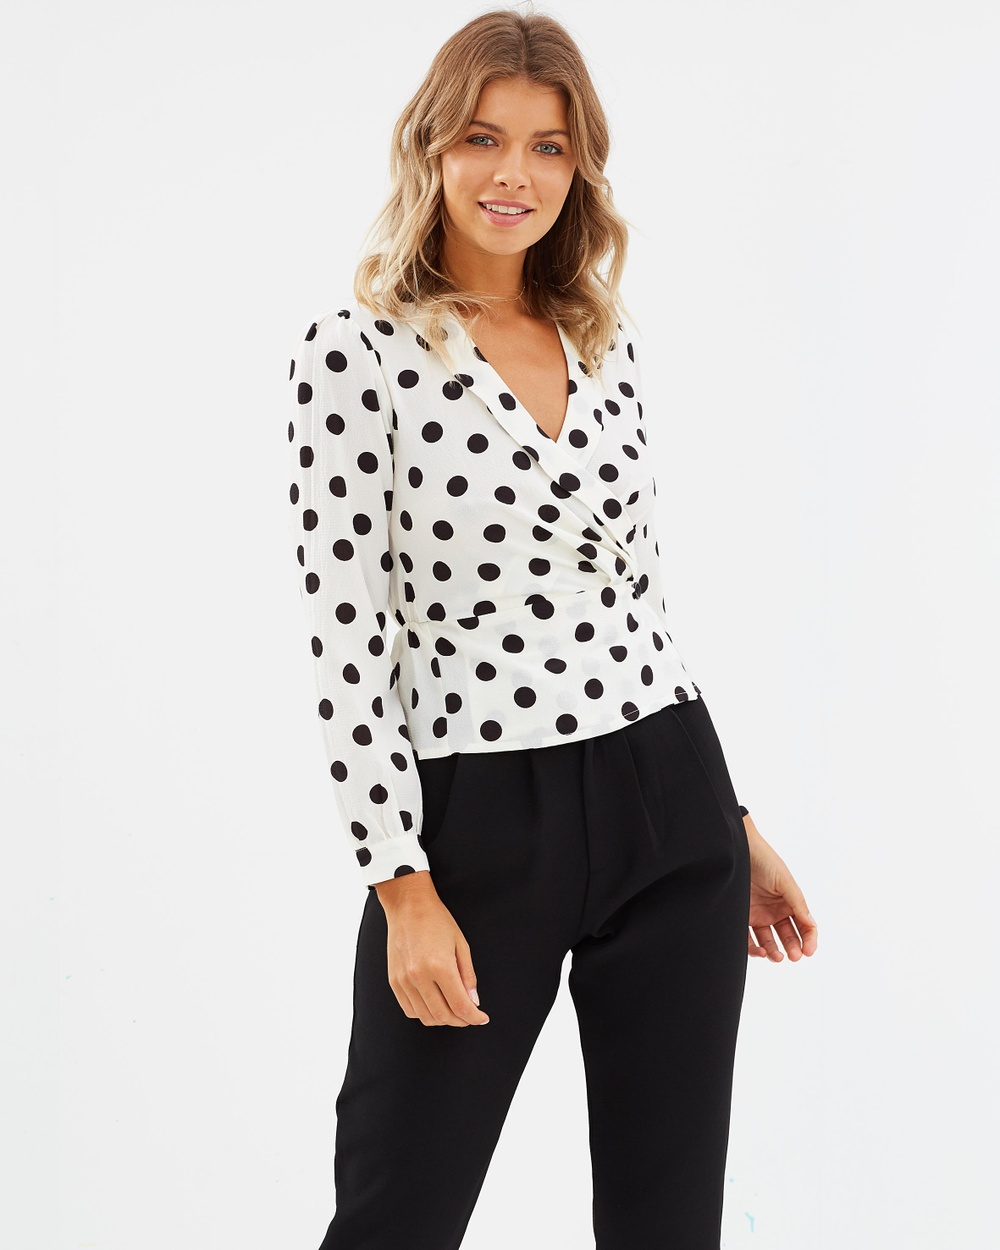 Atmos & Here ICONIC EXCLUSIVE Lauren Button Wrap Top Tops Polkadot ICONIC EXCLUSIVE Lauren Button Wrap Top